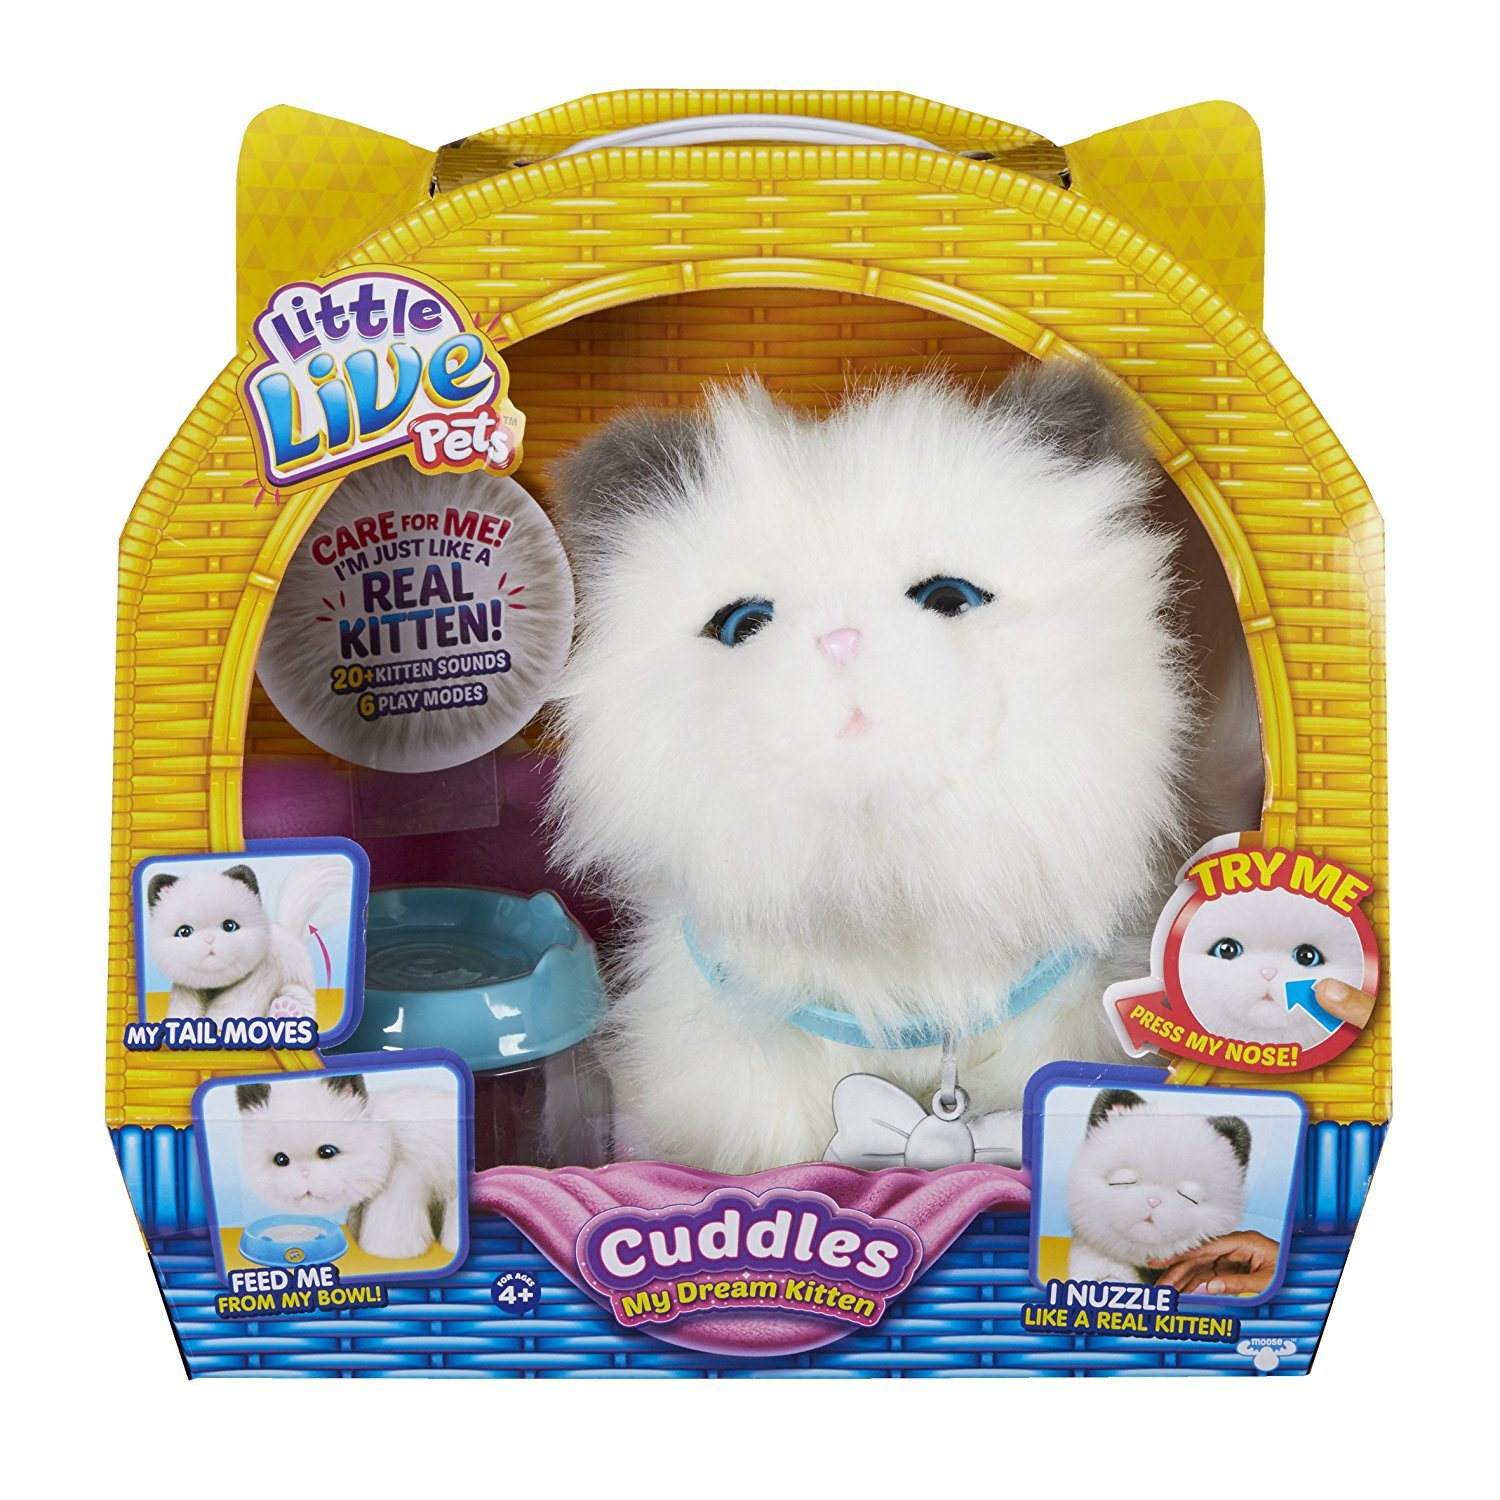 Little Live Pets: My Dream Kitten - Cuddles image